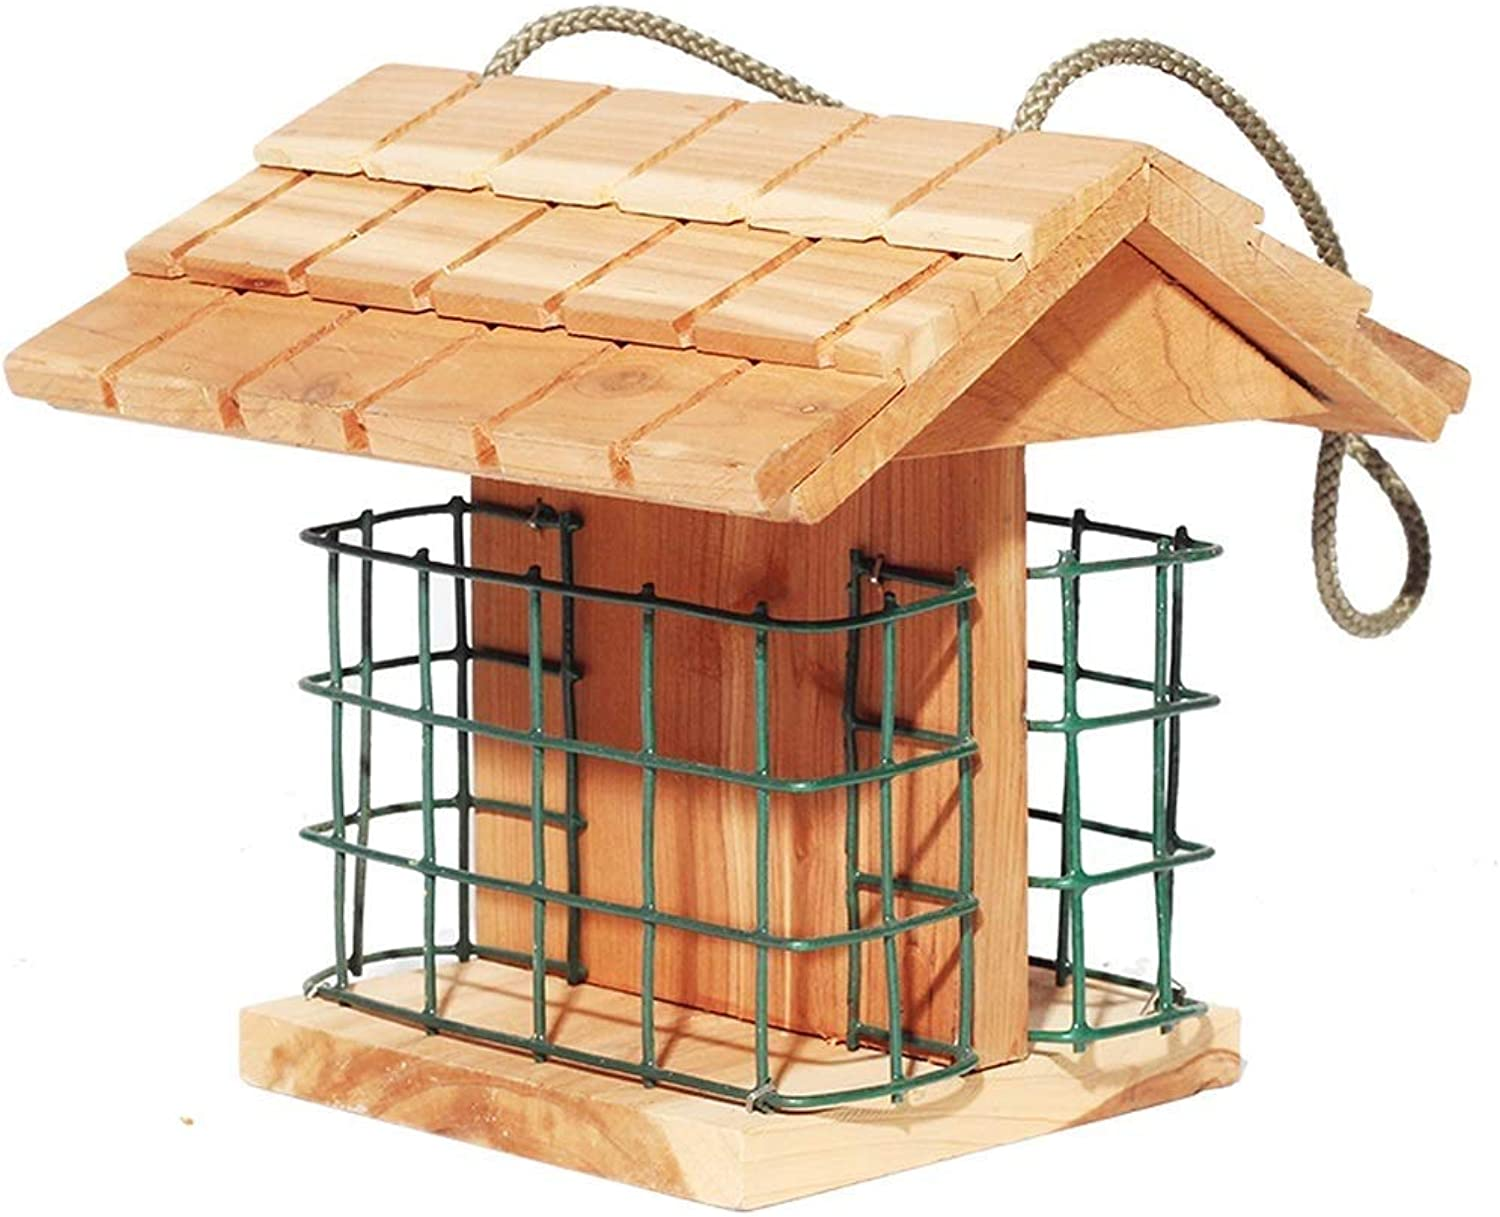 Feeder Bird Buffet, Garden Feeding Station With Wooden Bread And Fruit